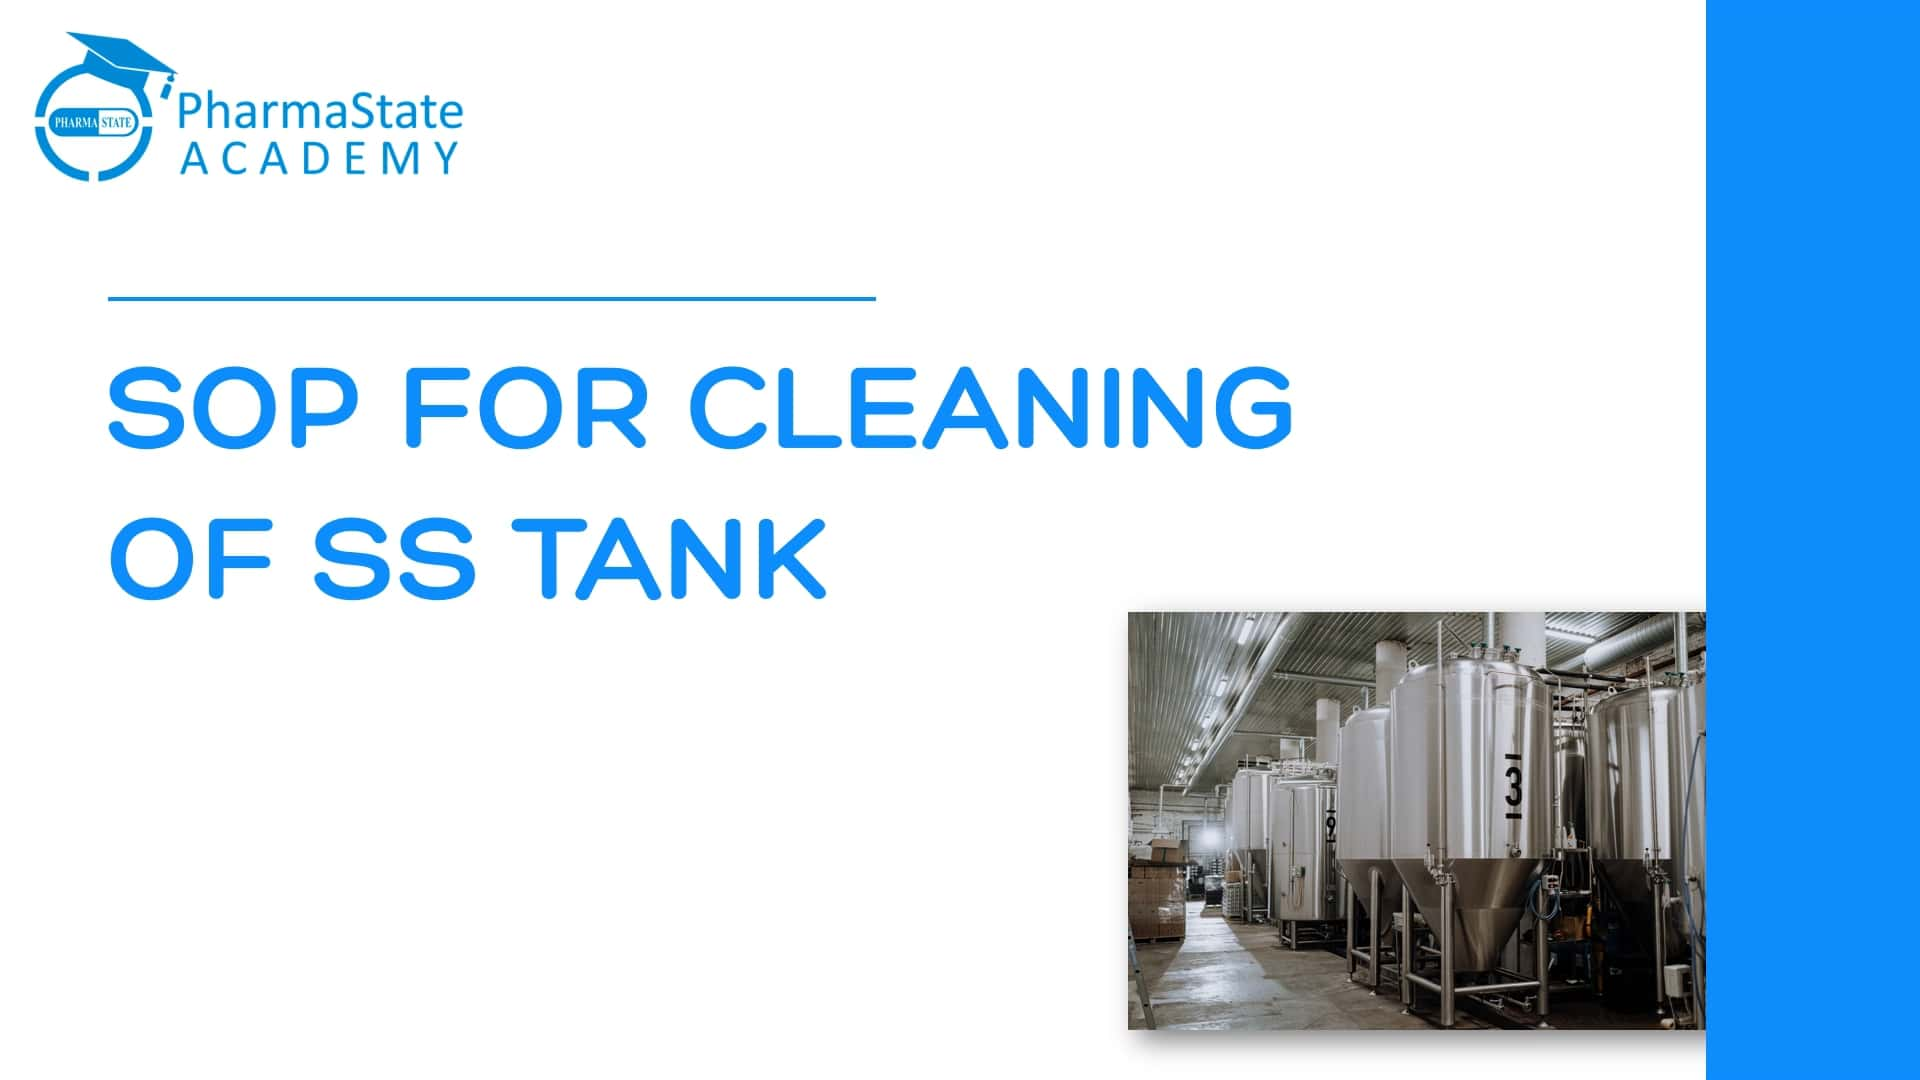 SOP FOR CLEANING OF SS TANK